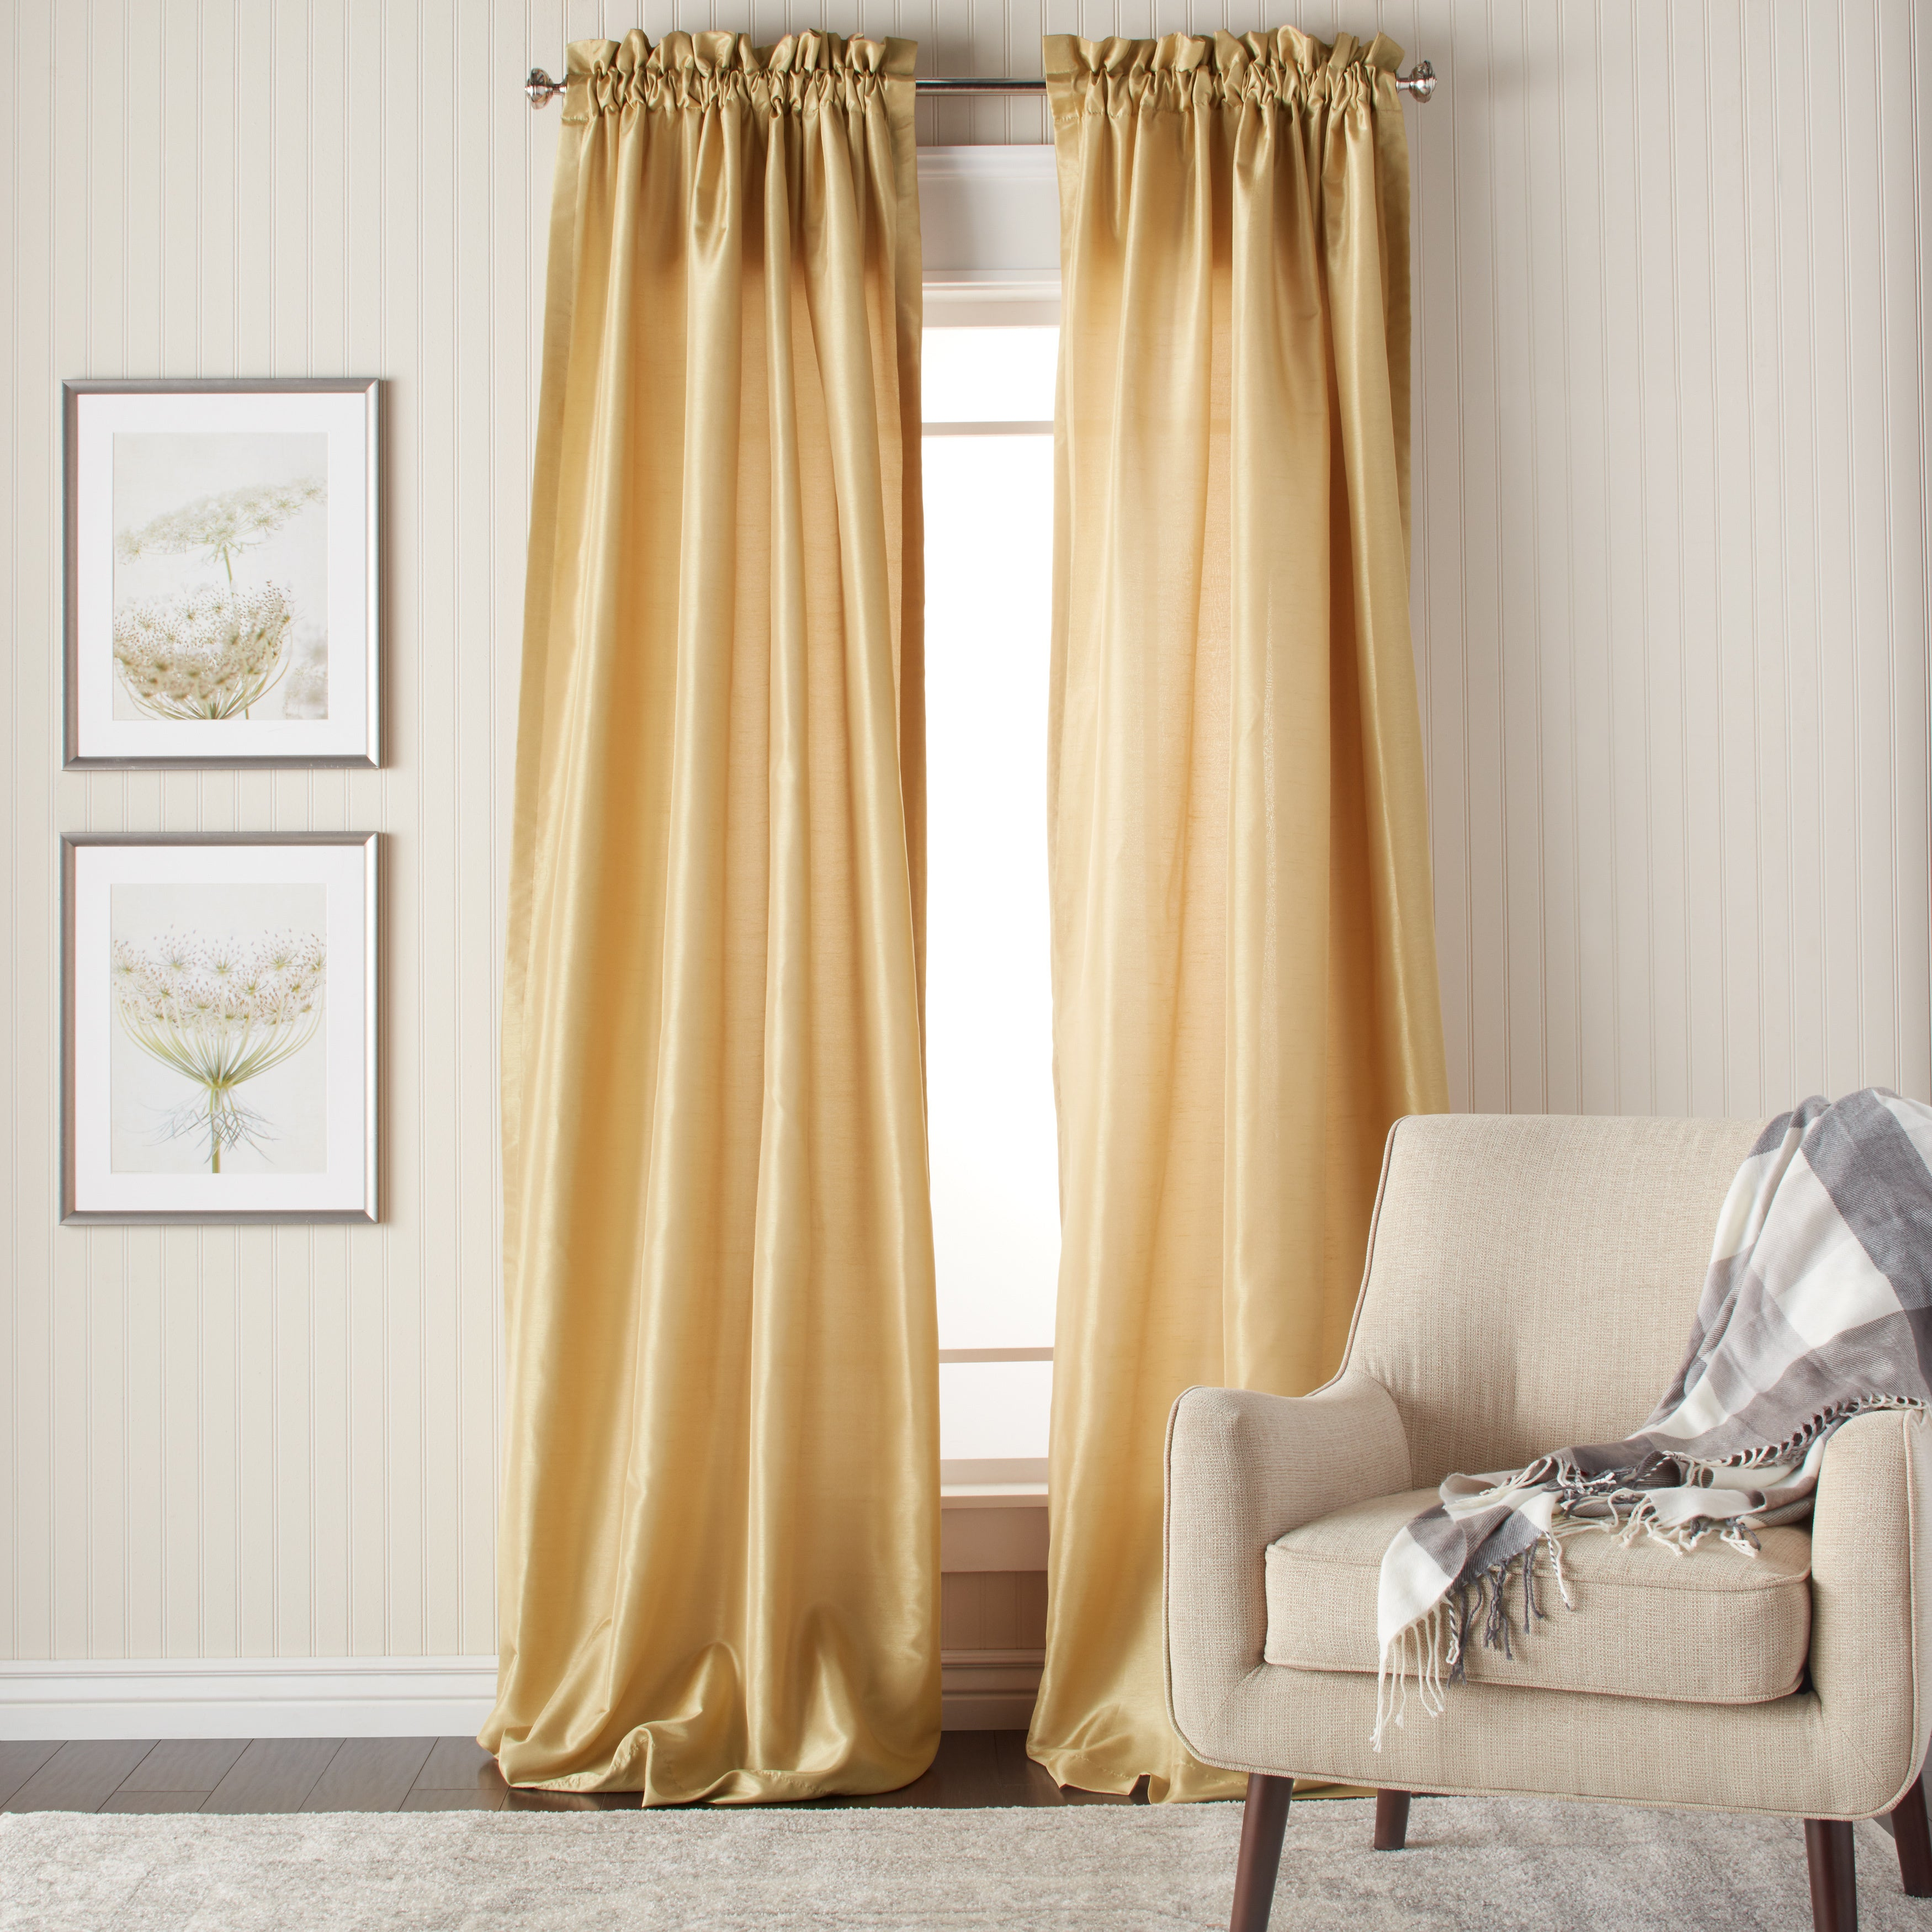 Buy Gold Curtains & Drapes Online at Overstock.com | Our Best Window ...